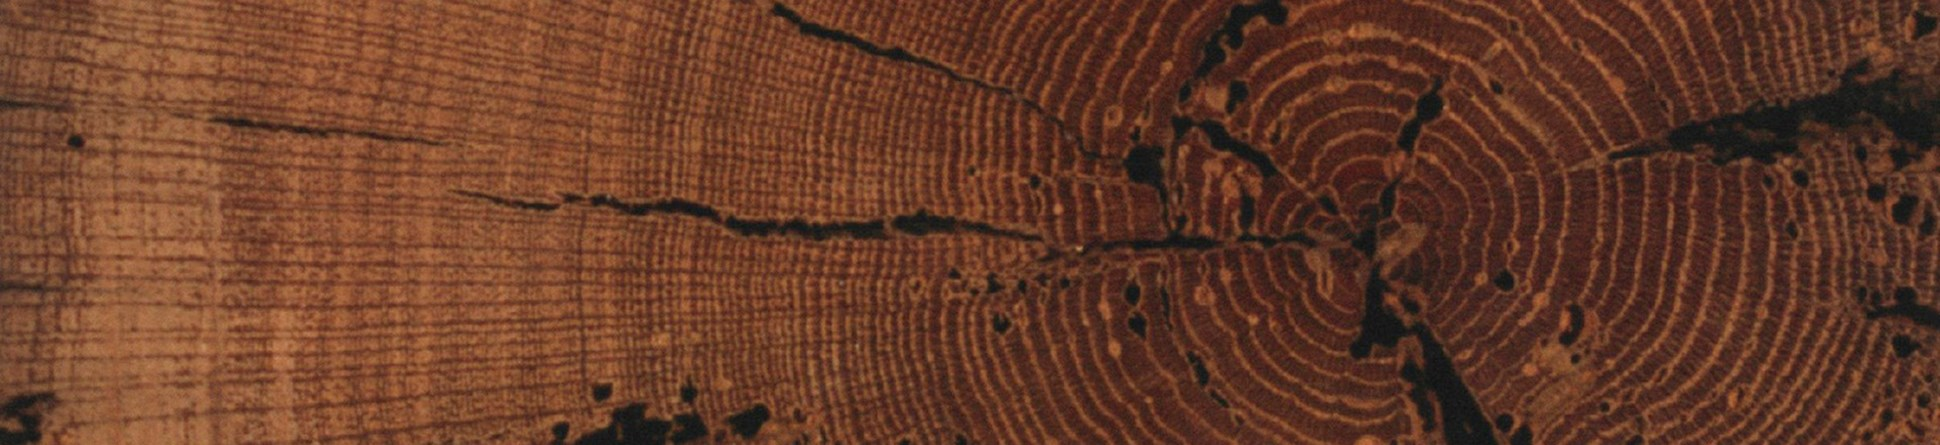 Photograph of tree trunk cross-section